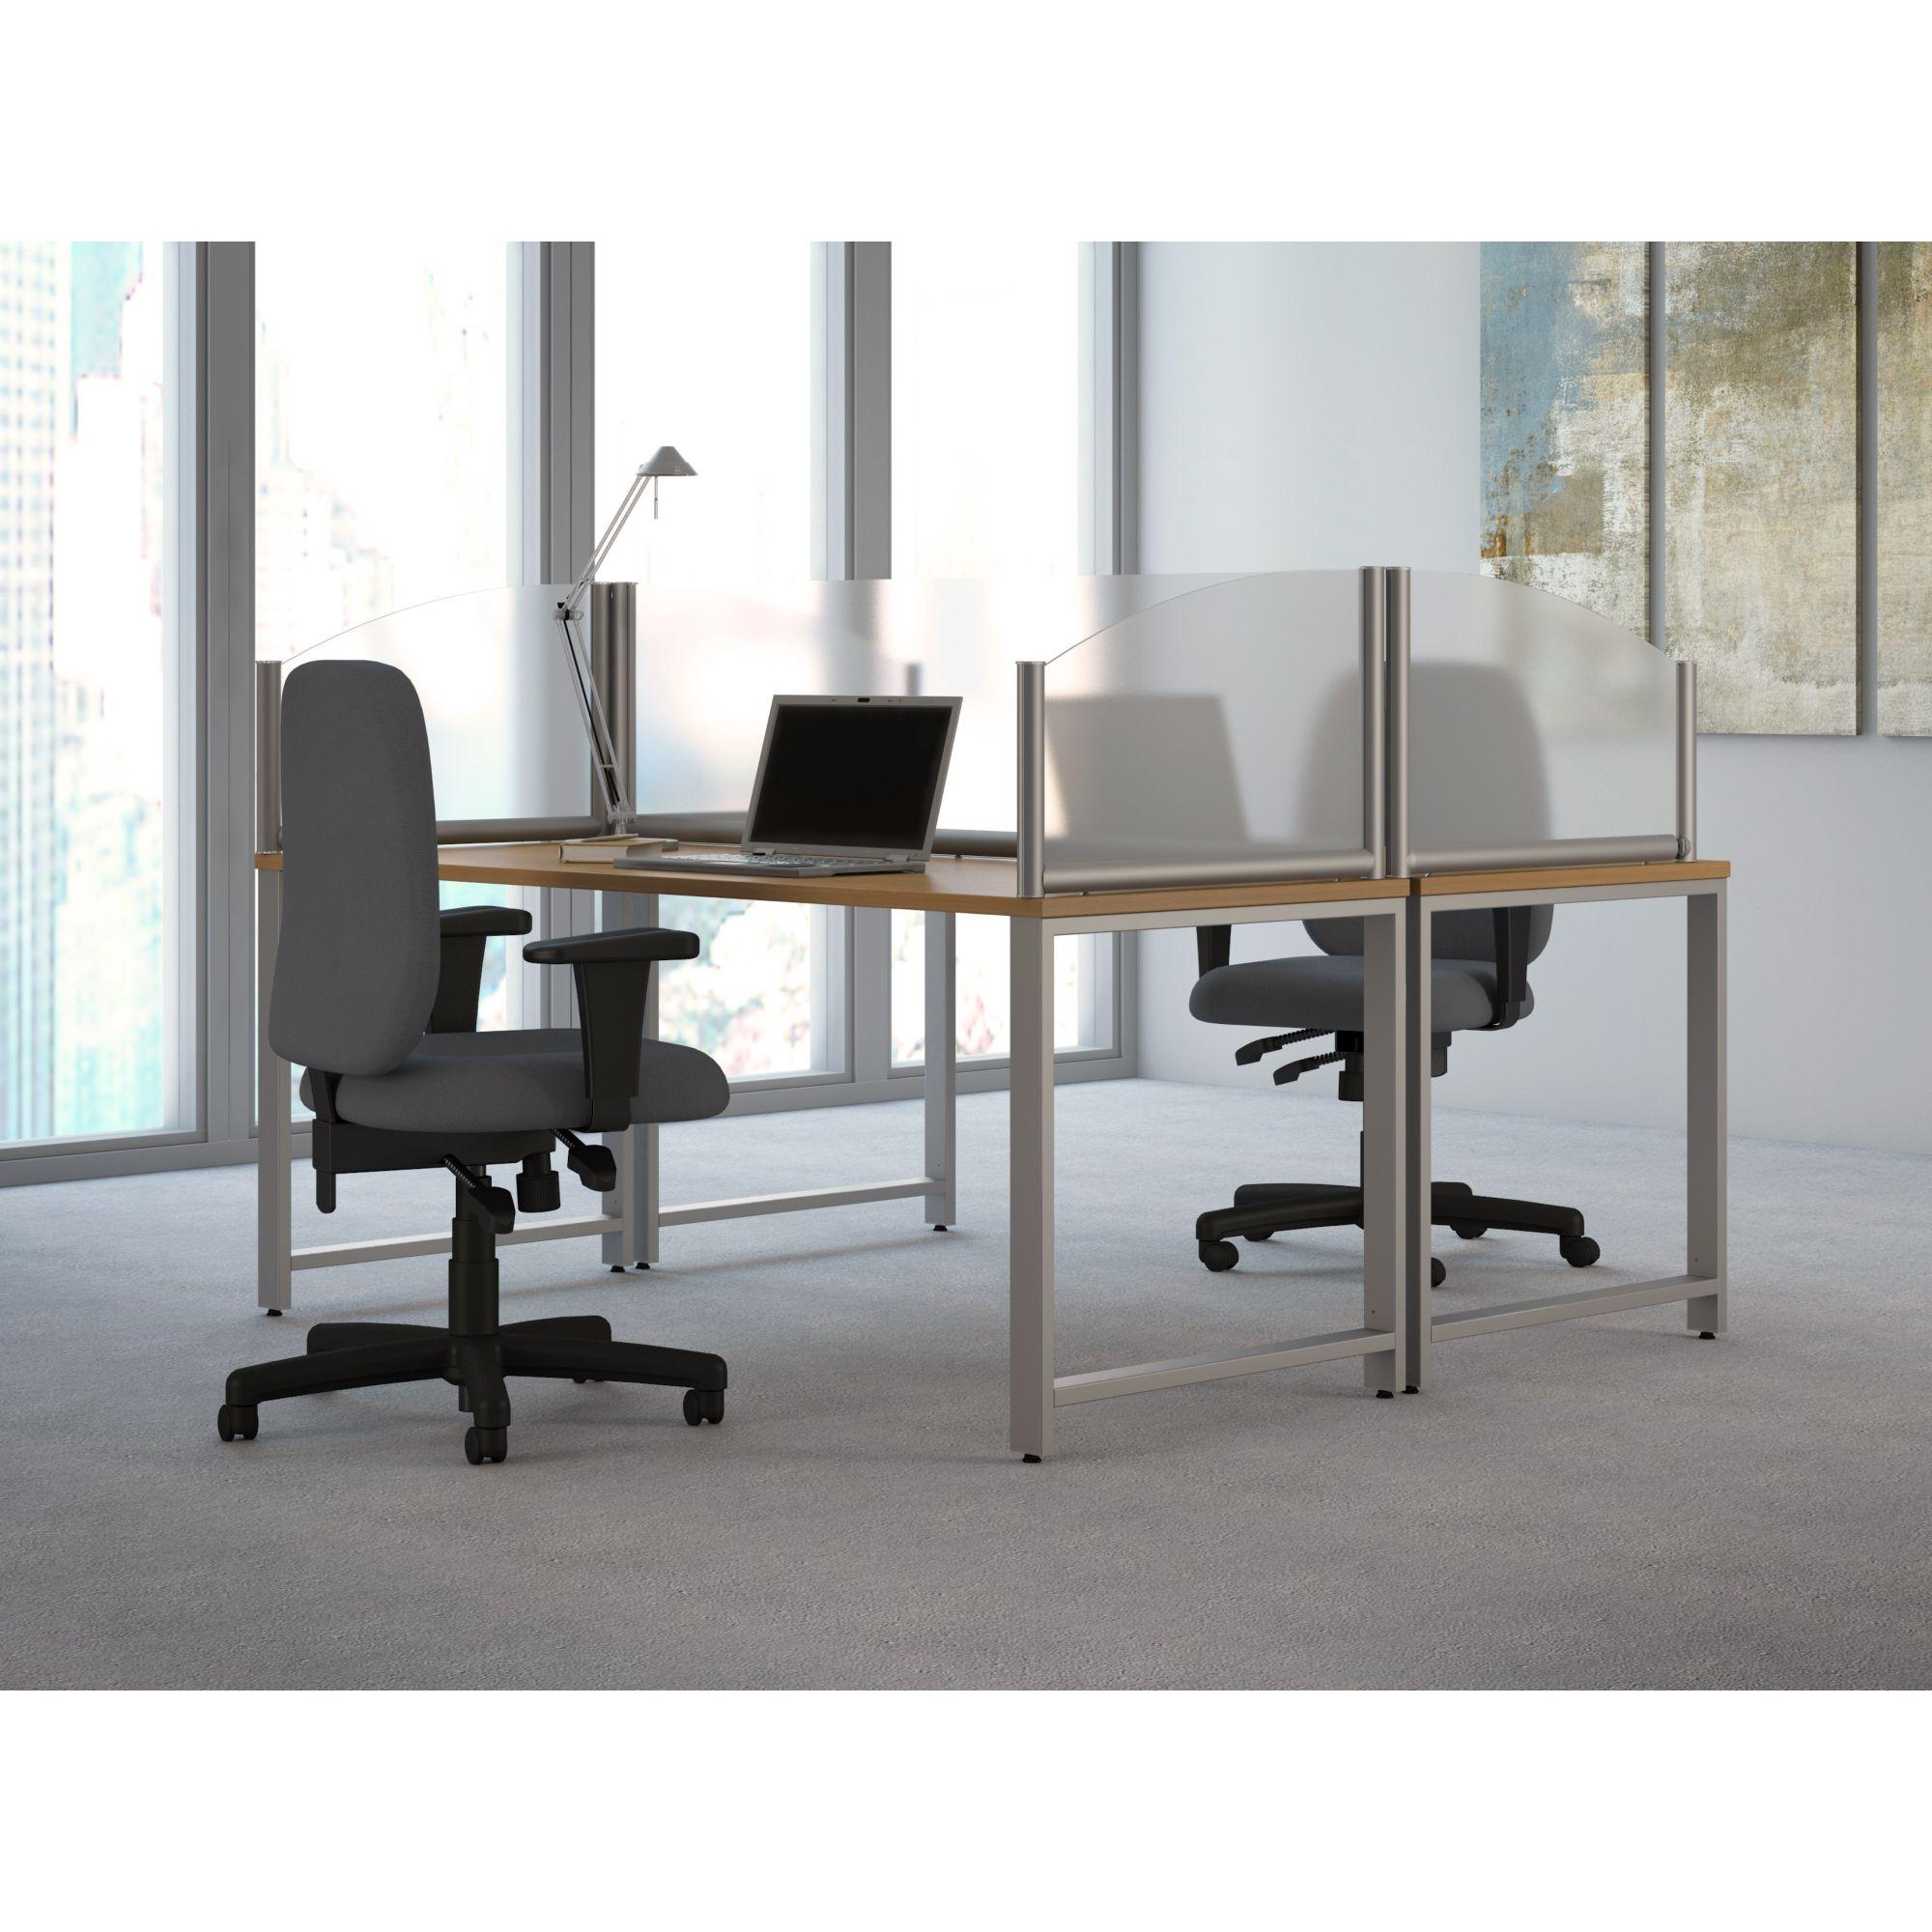 best desk office dividers lovely delectable more fice at check depot decor glass chair ideas luxury design computer